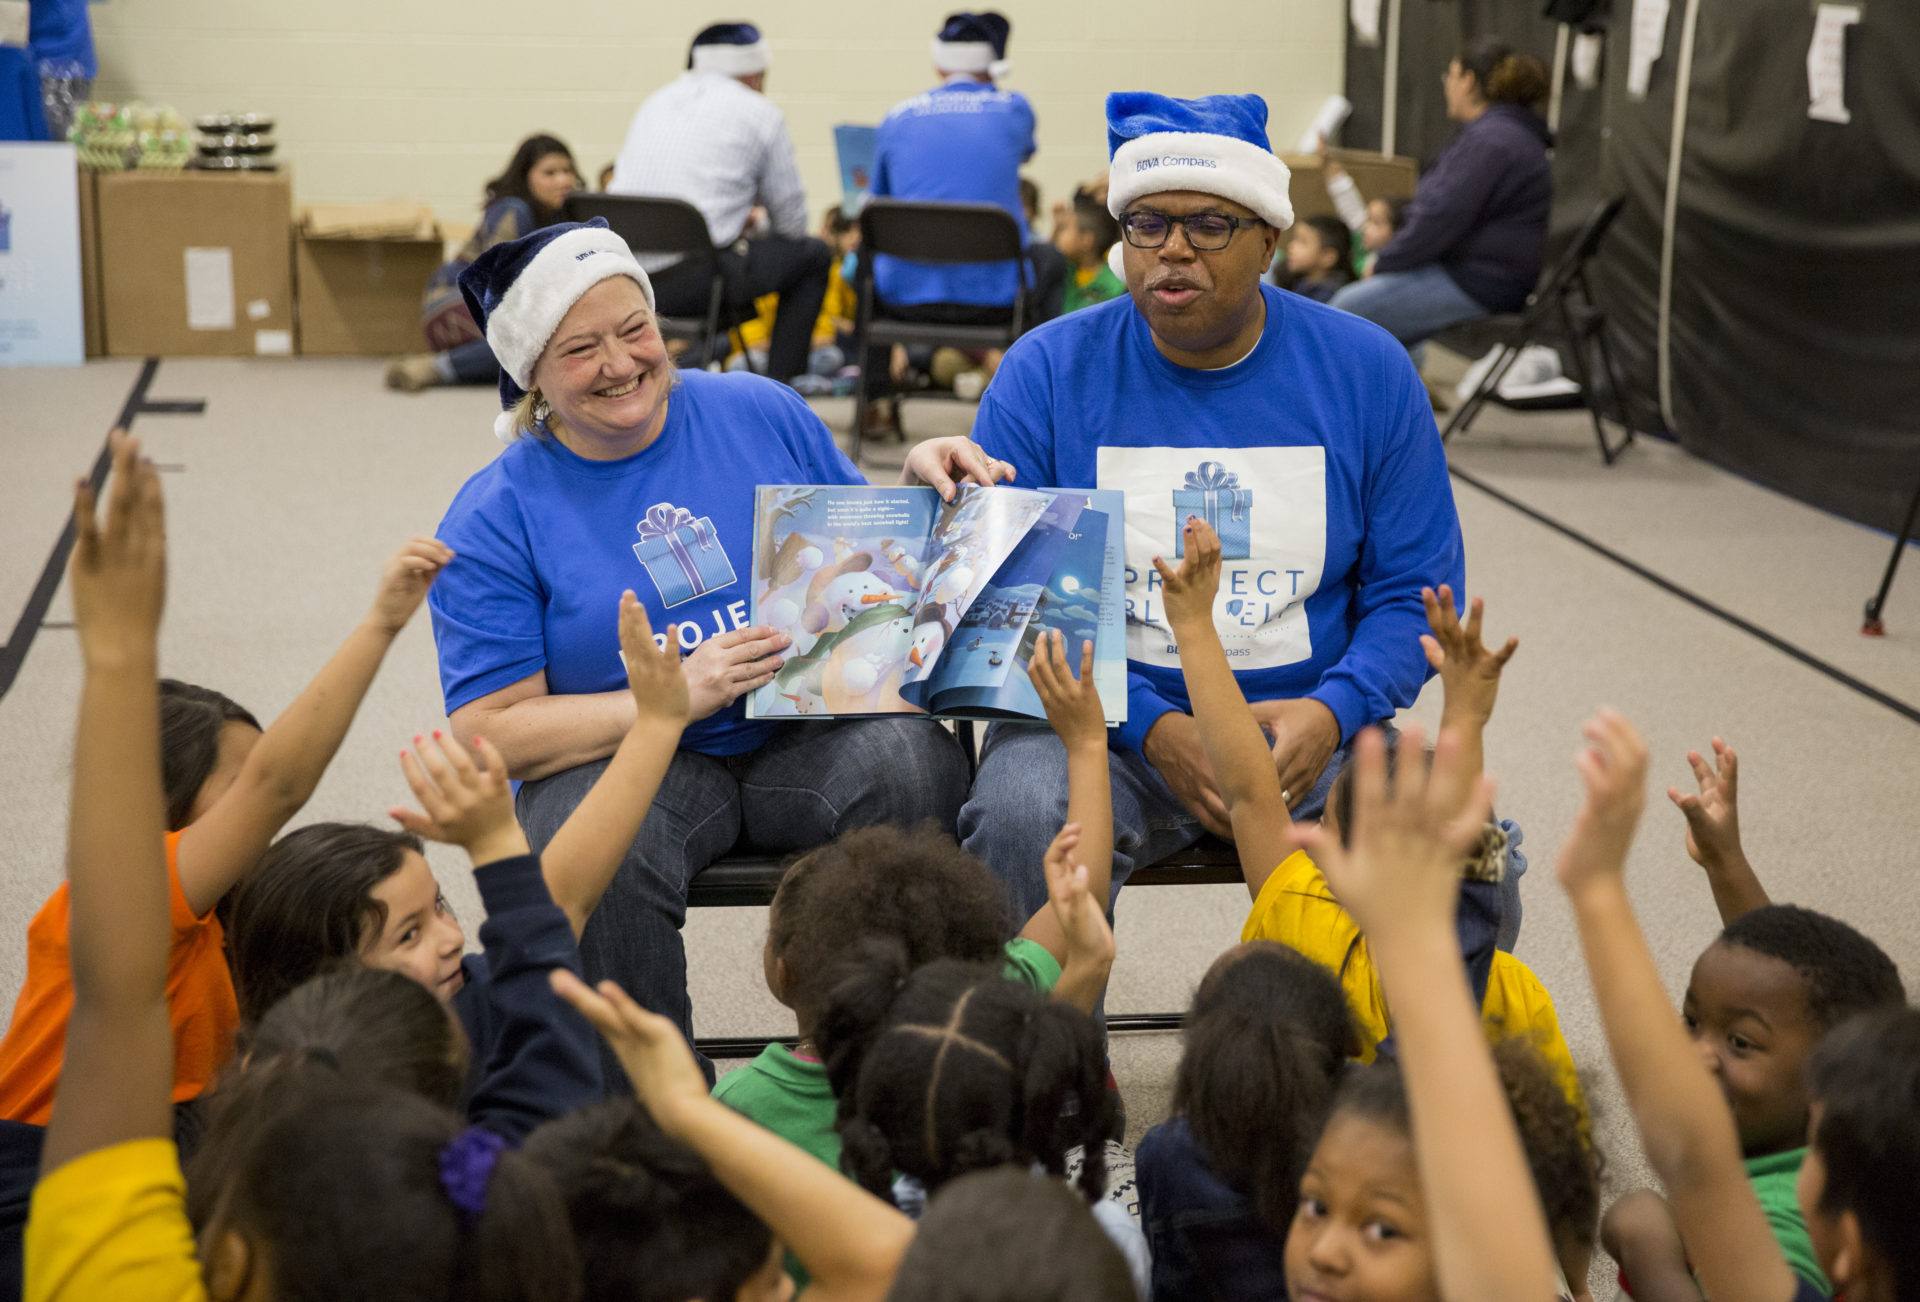 Denver's Project Blue Elf event in 2016